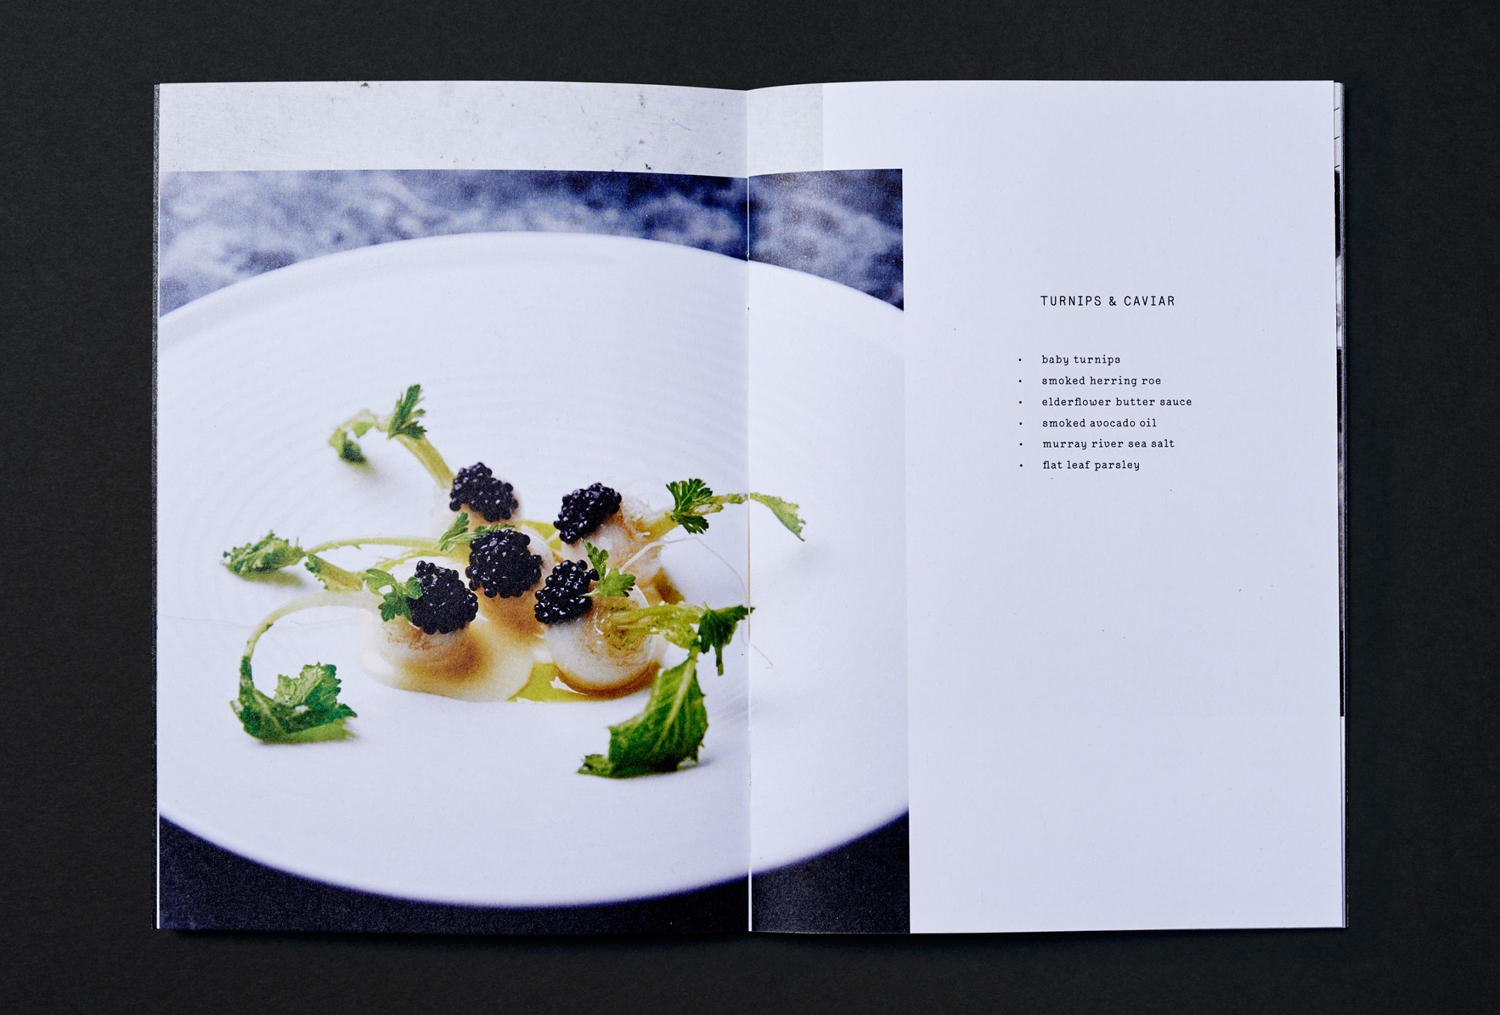 Menu and art direction by graphic design studio Swear Words for Melbourne restaurant Ides